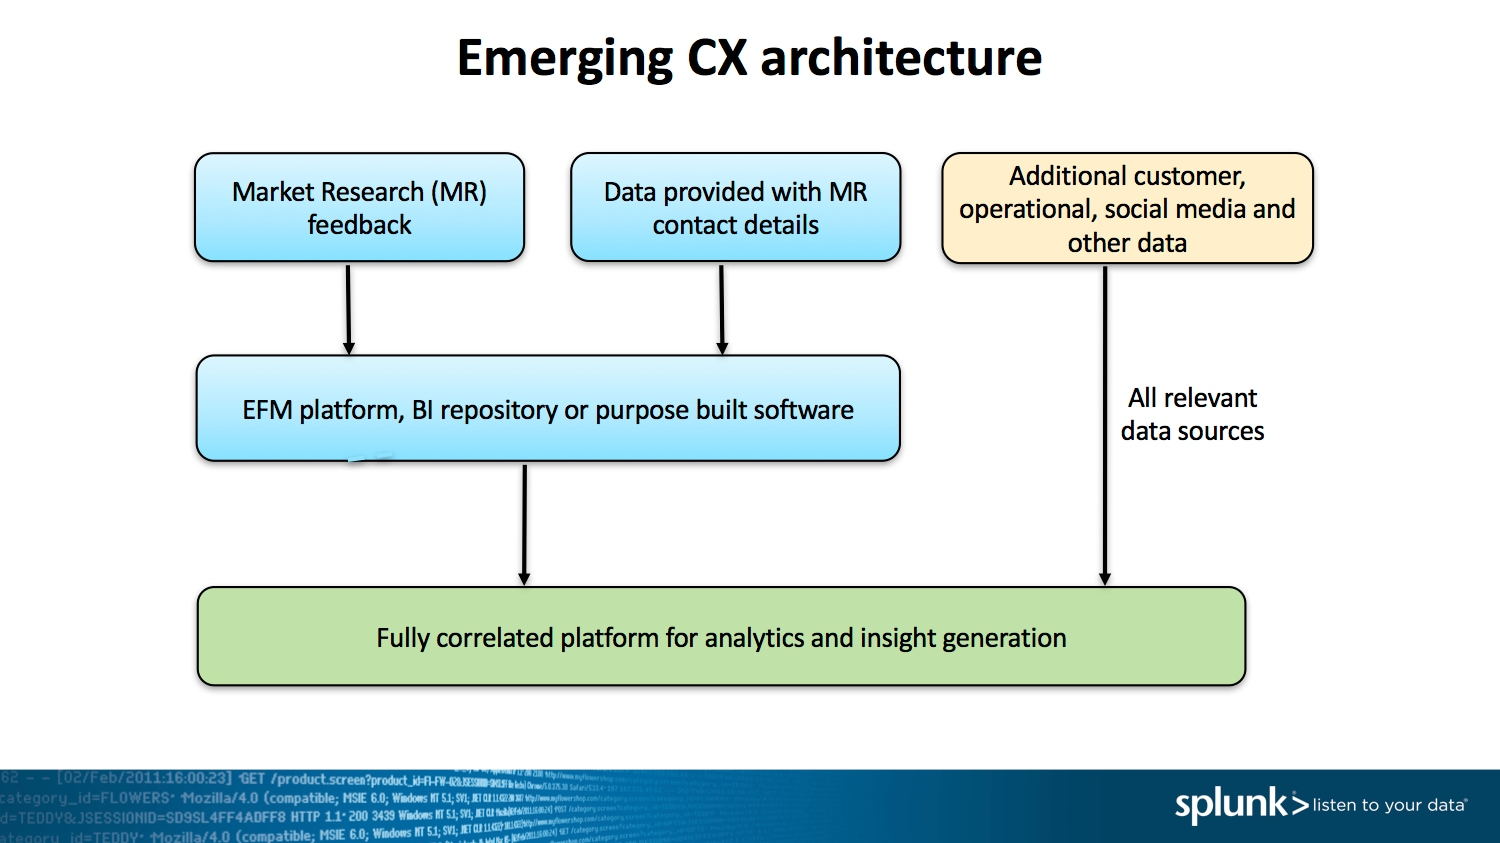 Emerging CX architecture